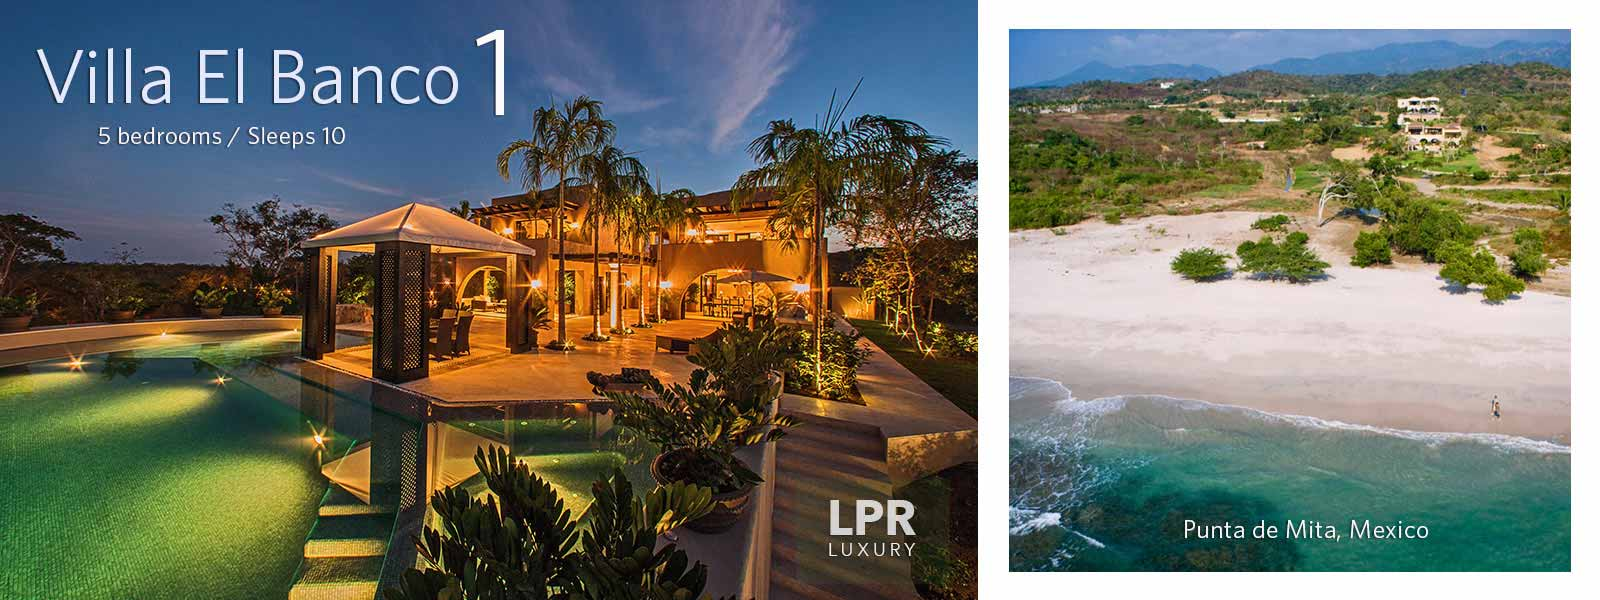 Villa El Banco 1 - Luxury Punta Mita Rentals and Real Estate - Vallarta | Nayarit, Mexico